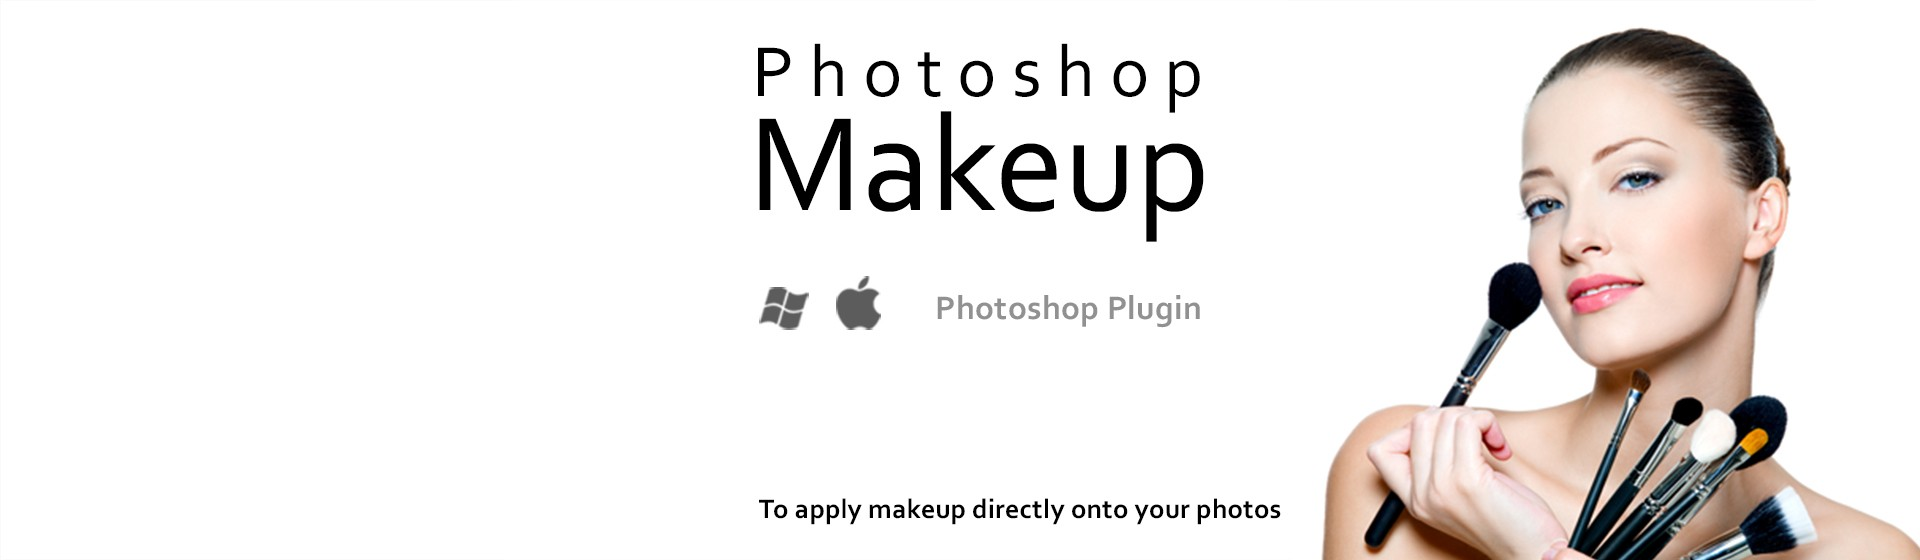 Photoshop Makeup